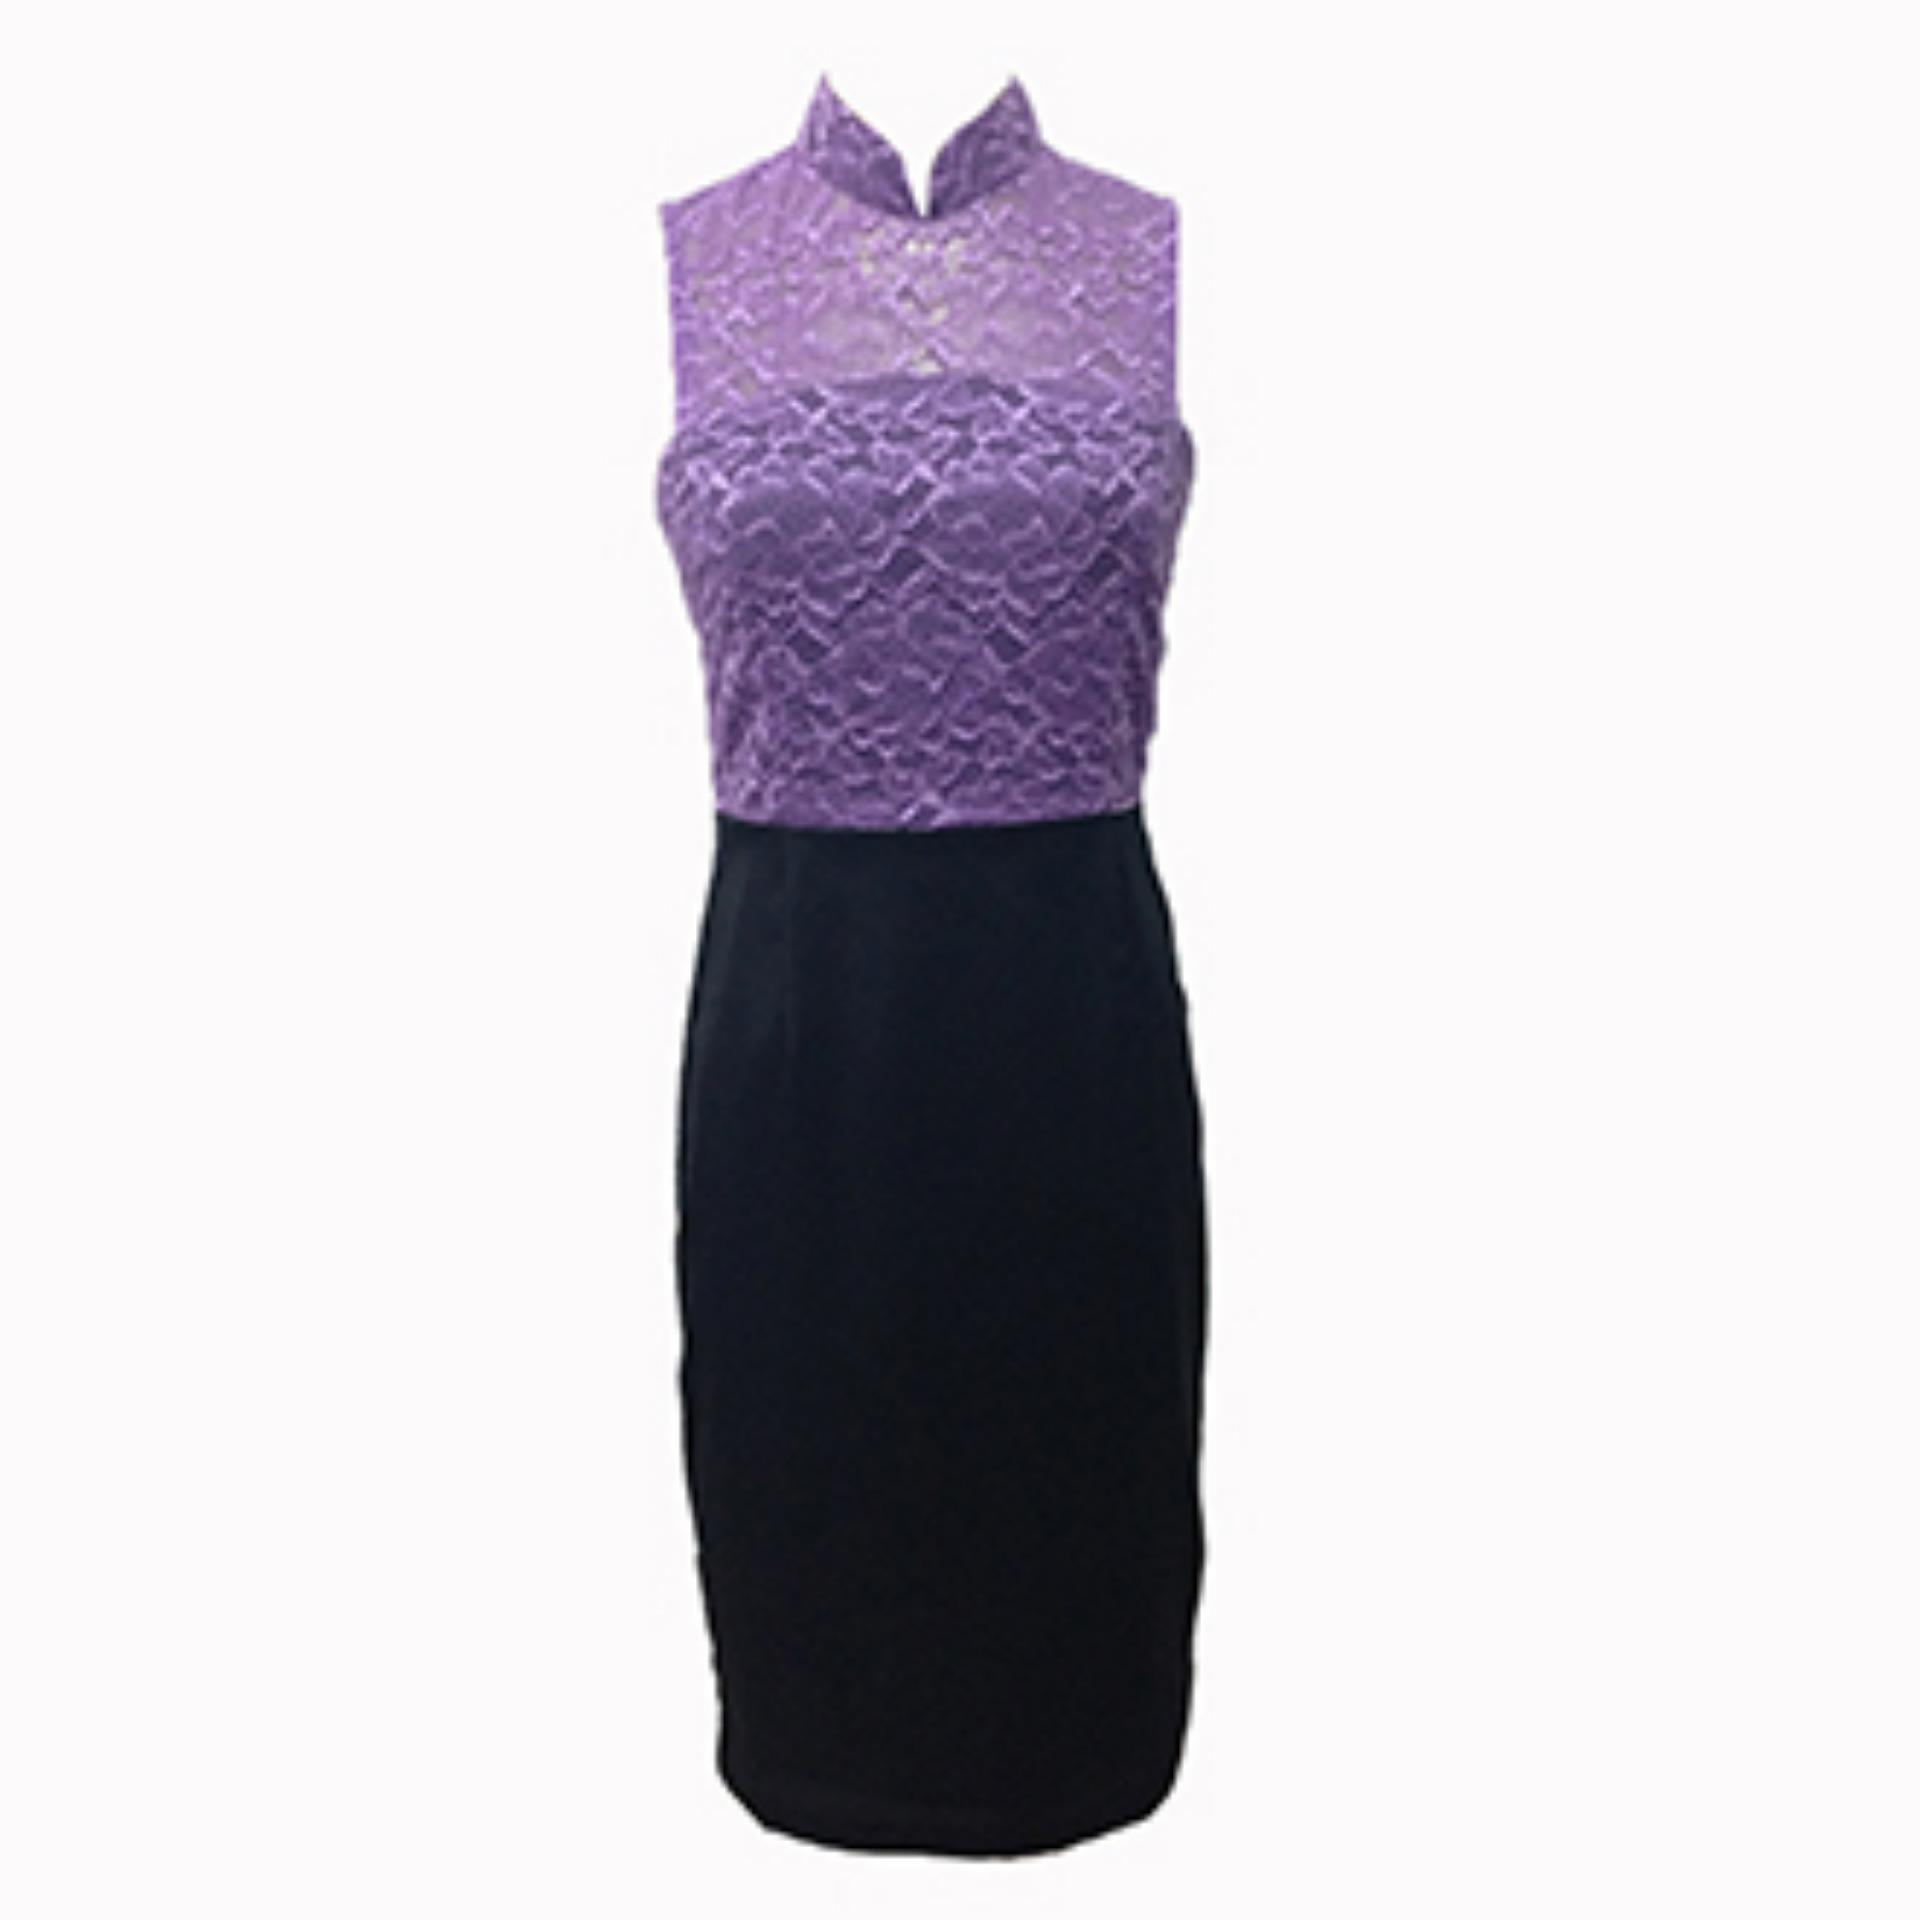 8674d5294 Buy Brand New Collection of Dresses | Lazada.sg